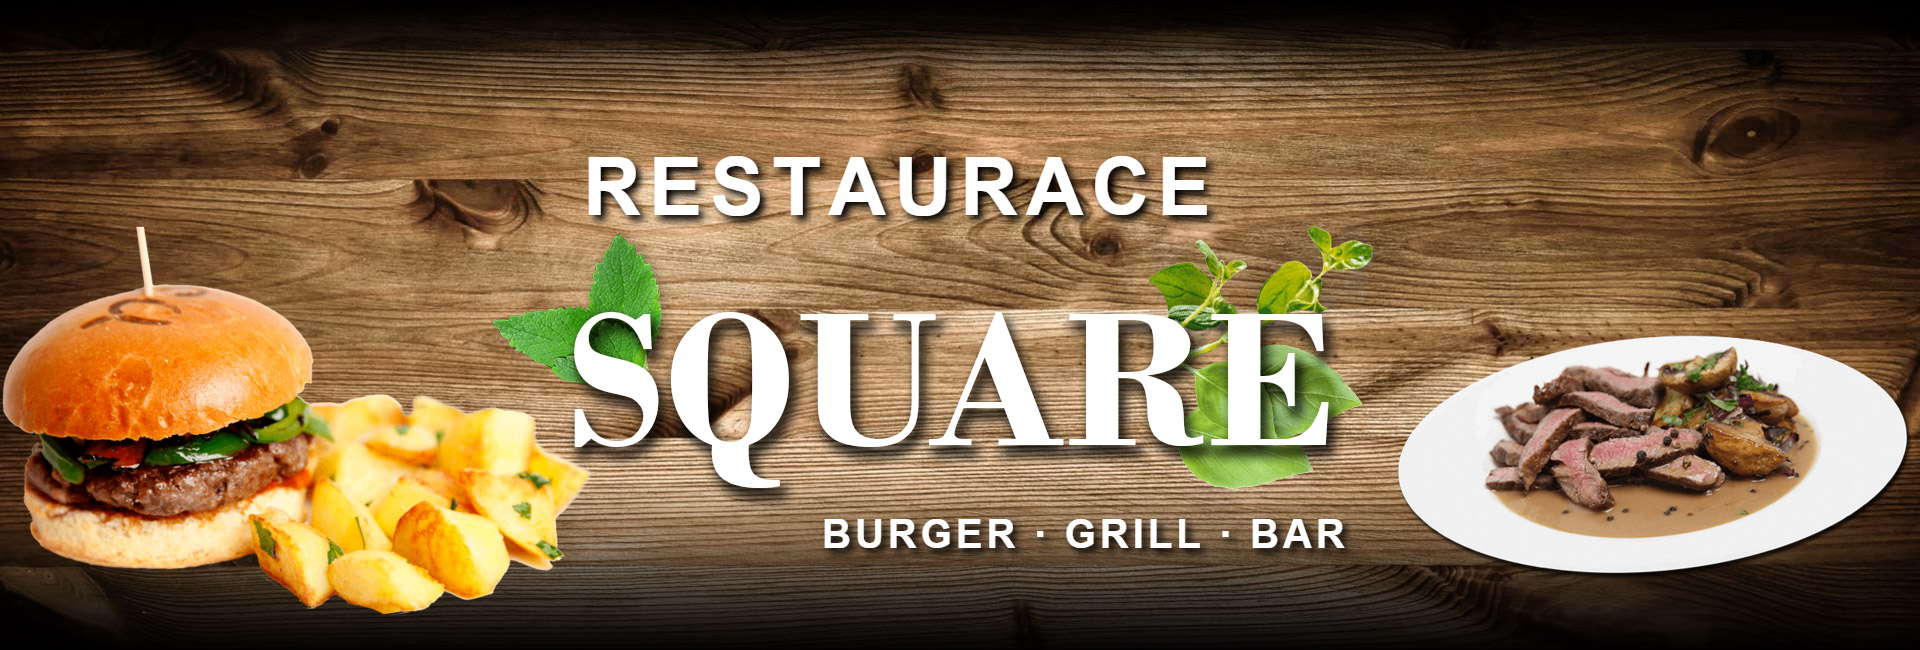 restaurace square burger grill bar